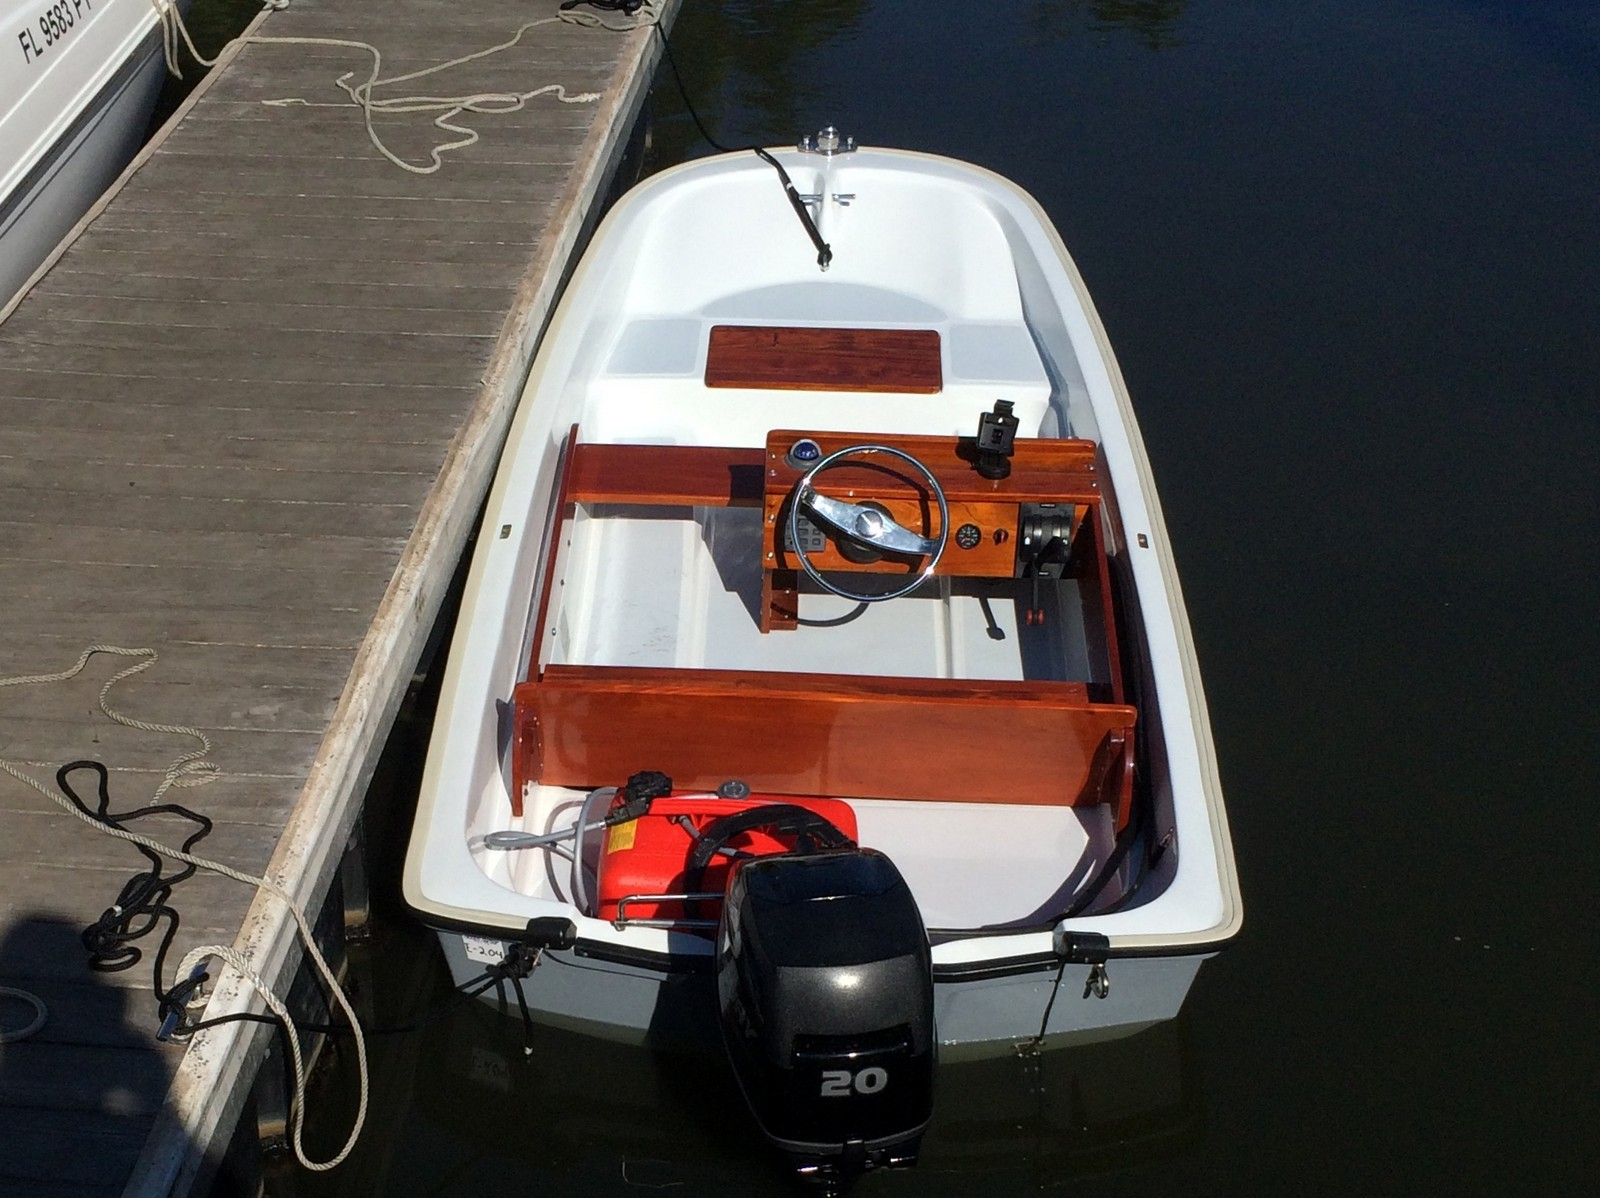 medium resolution of despite its factory new appearance this boat is not i don t know it s exact age but it s a well restored super sport model built from 1984 to 1994